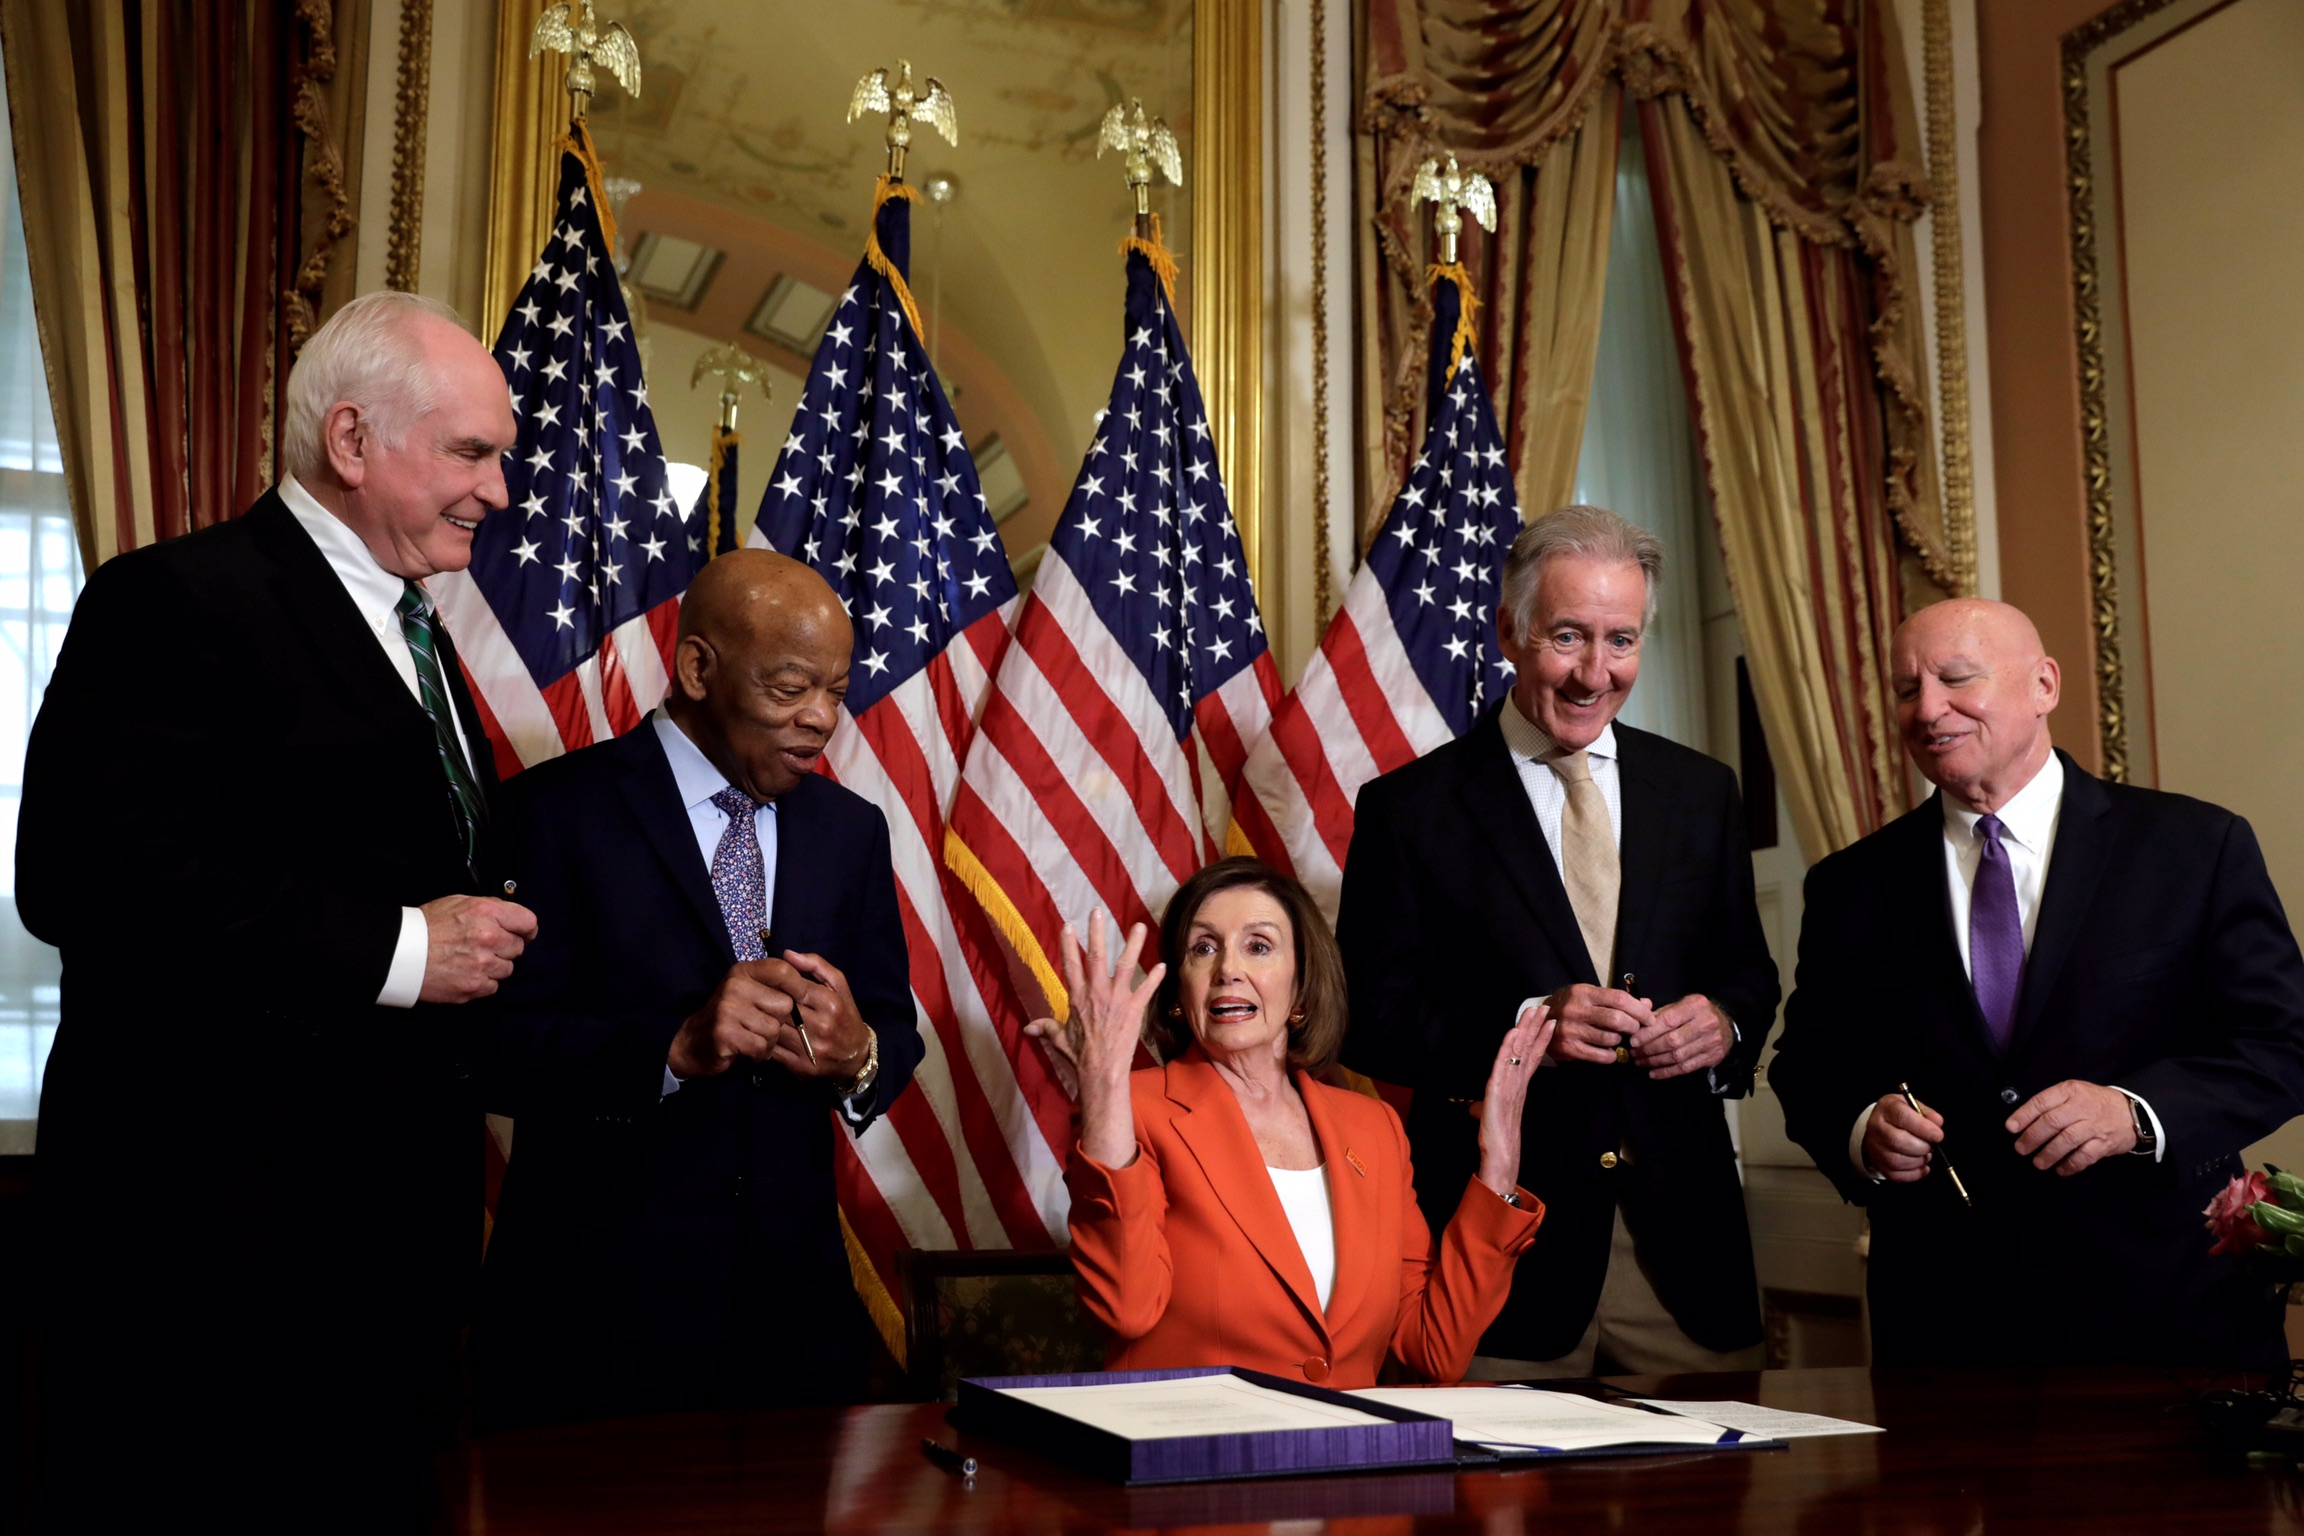 U.S. House Speaker Nancy Pelosi (D-CA) reacts after signing the Taxpayer First Act on Capitol Hill in Washington, U.S., June 21, 2019. REUTERS/Yuri Gripas